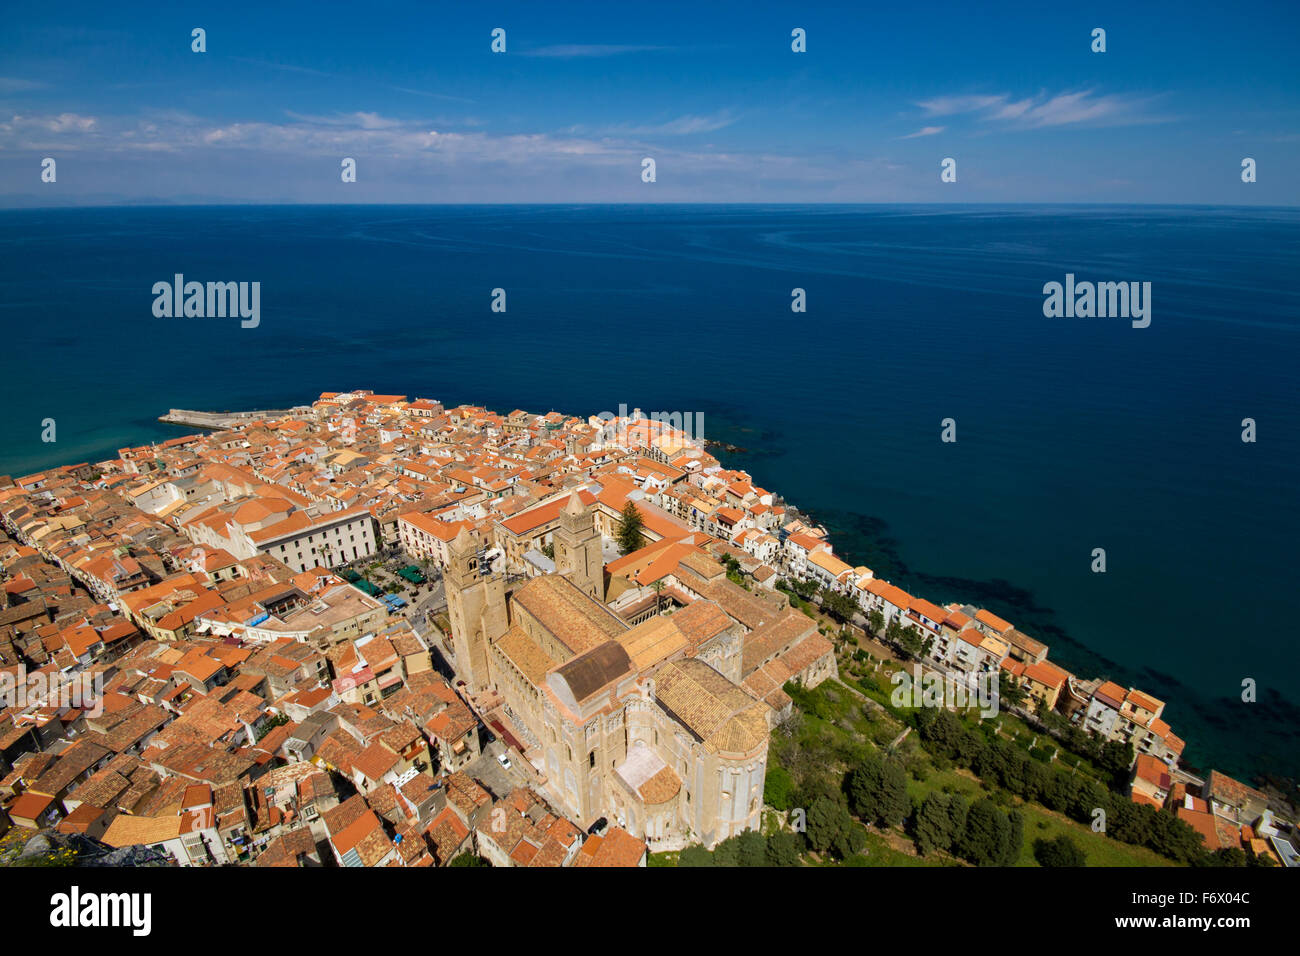 Panorama of Cefalu - Wide Angle Version, Sicily, Italy - Stock Image